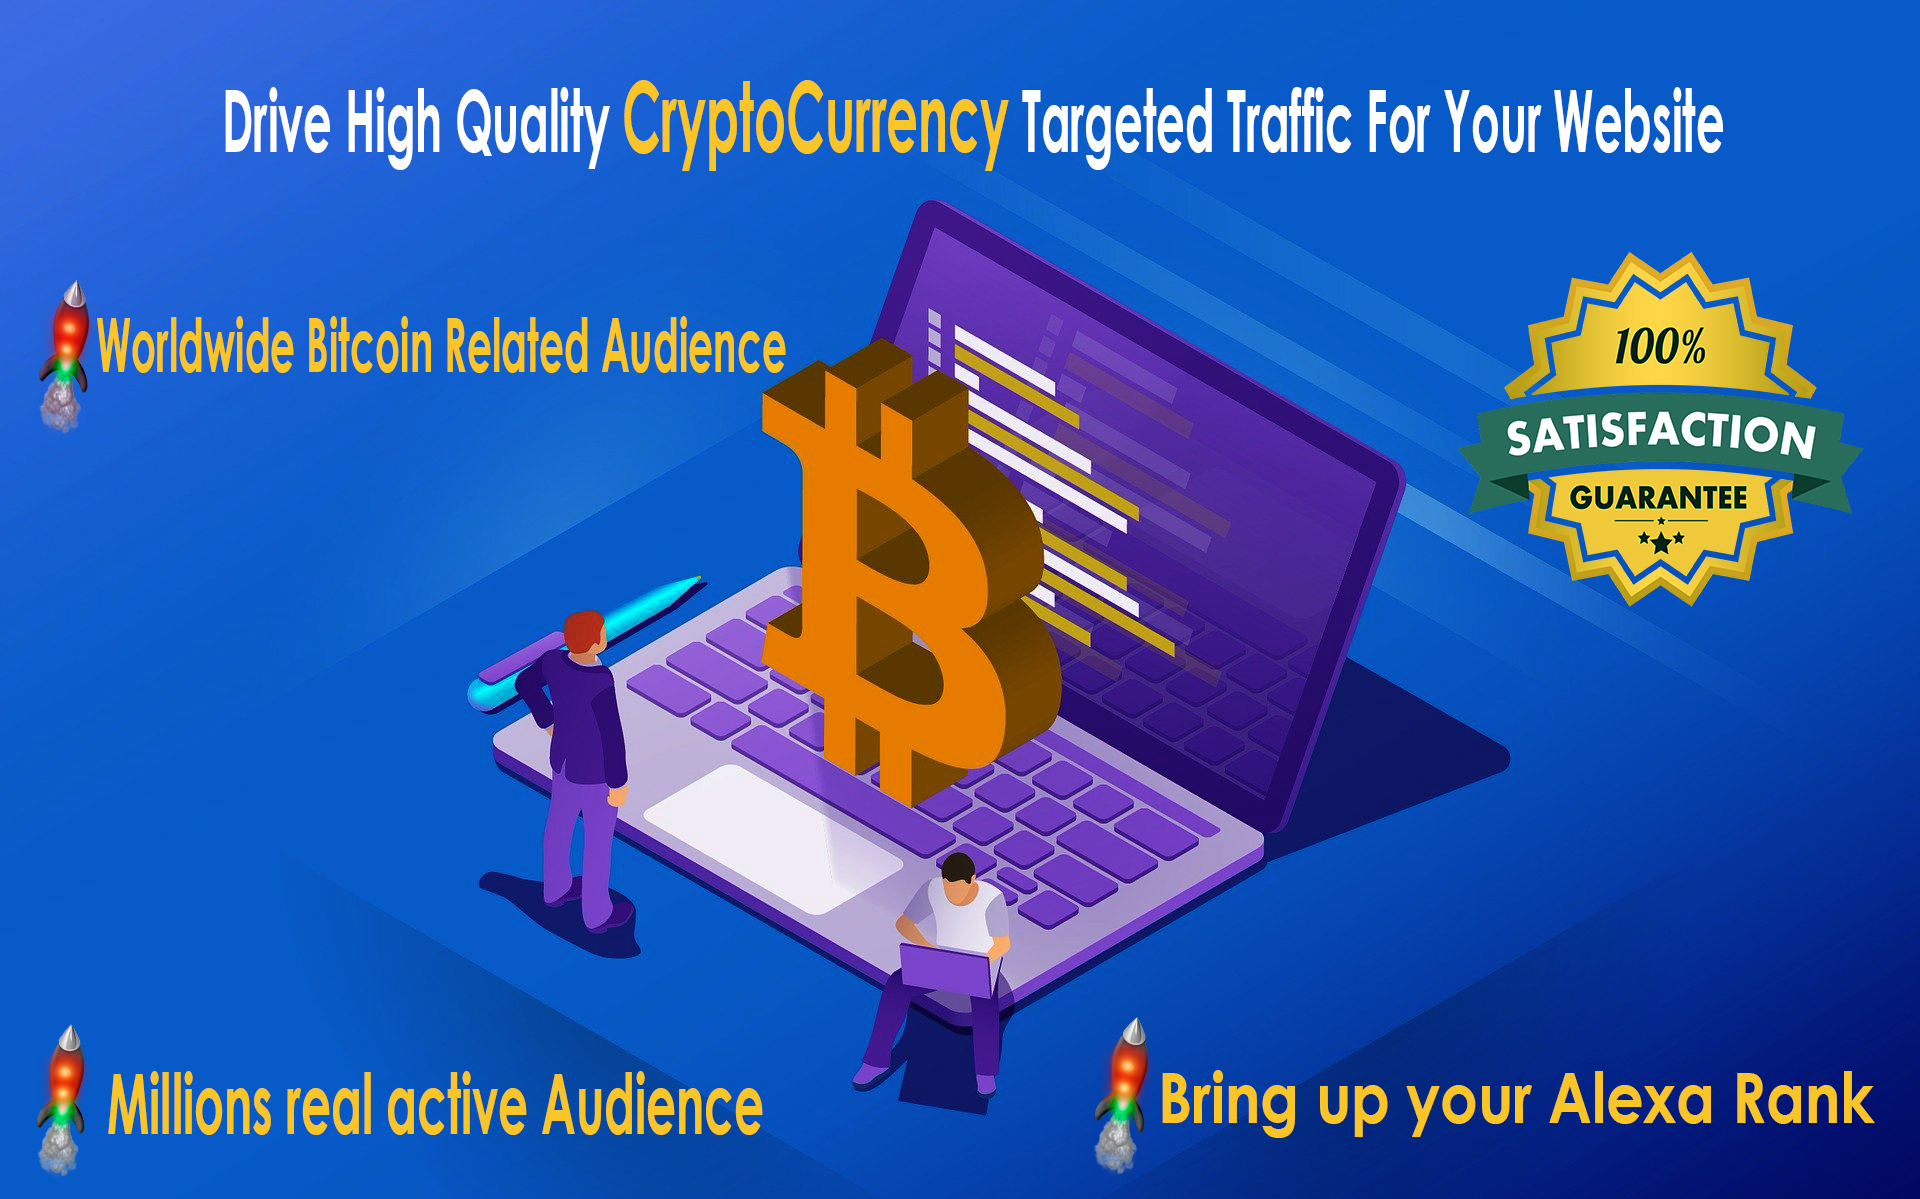 Drive High Quality Crypto Currency Targeted Daily Traffic For Your Website